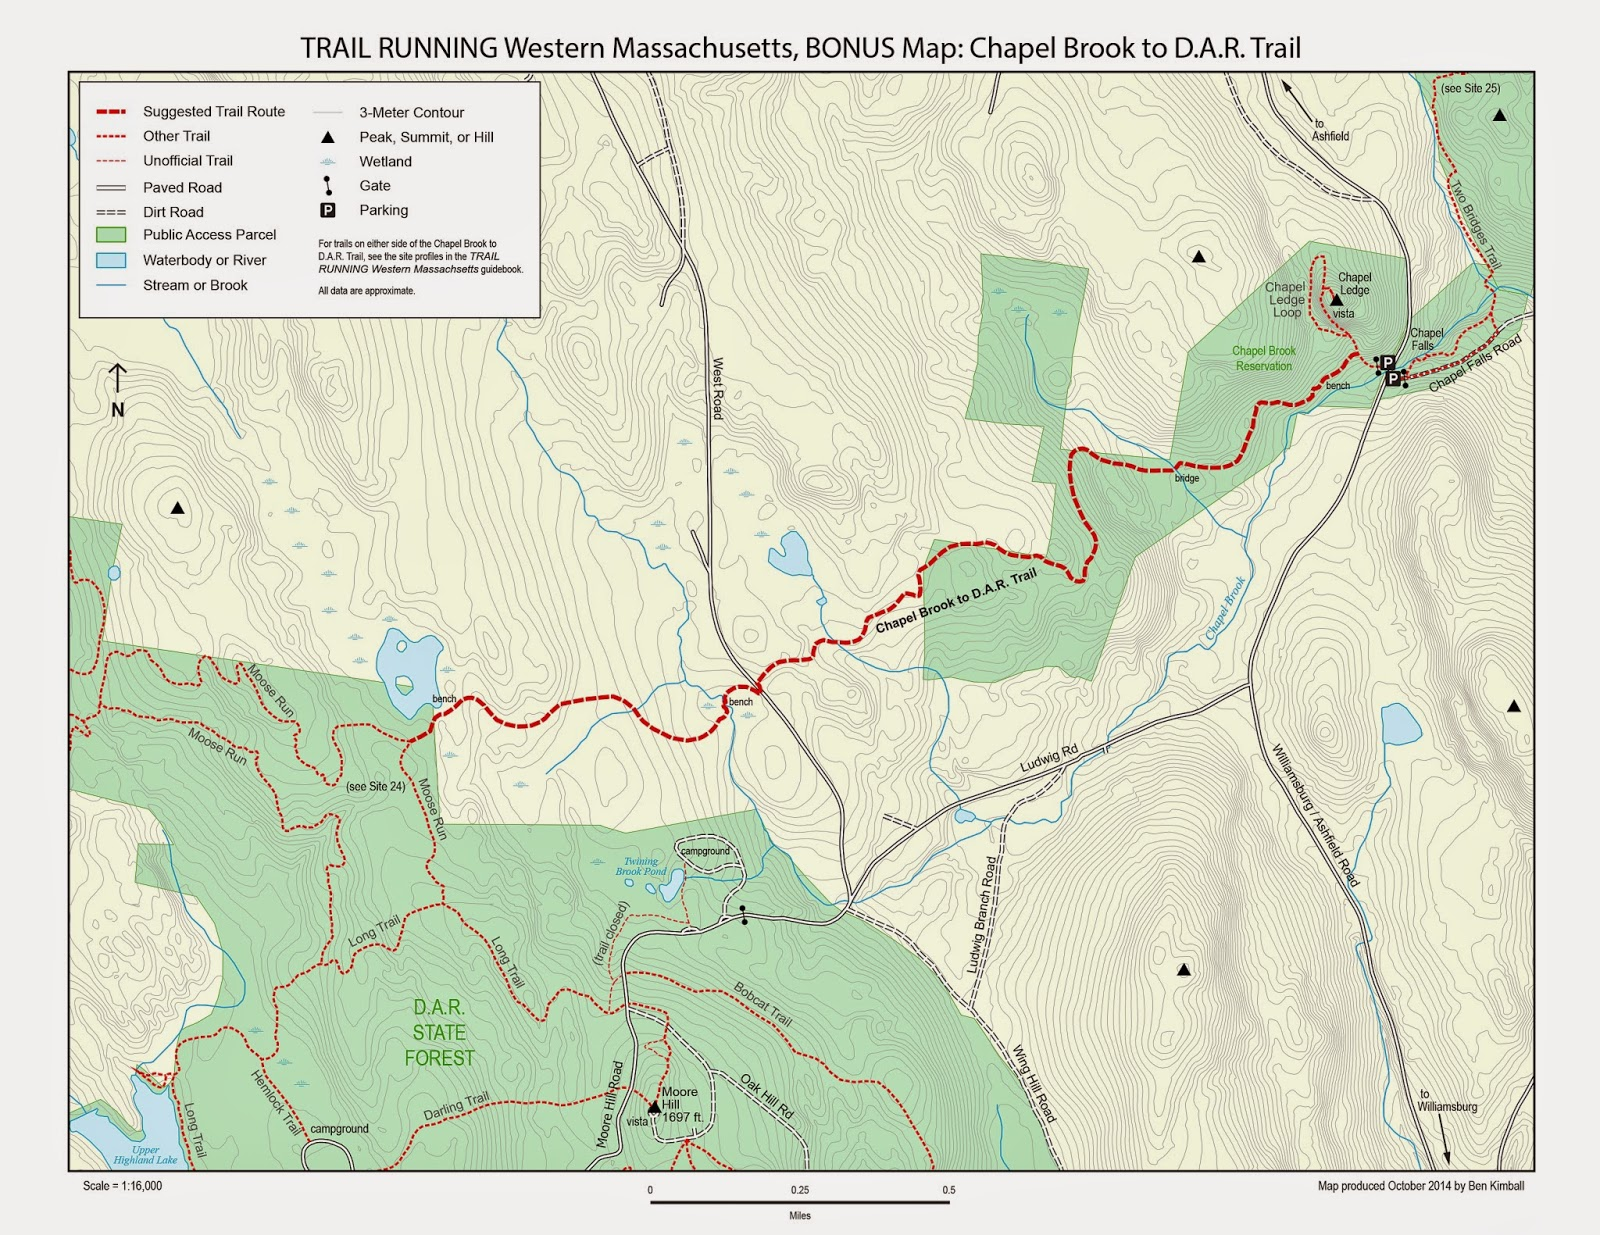 map of the Chapel Brook to DAR Trail